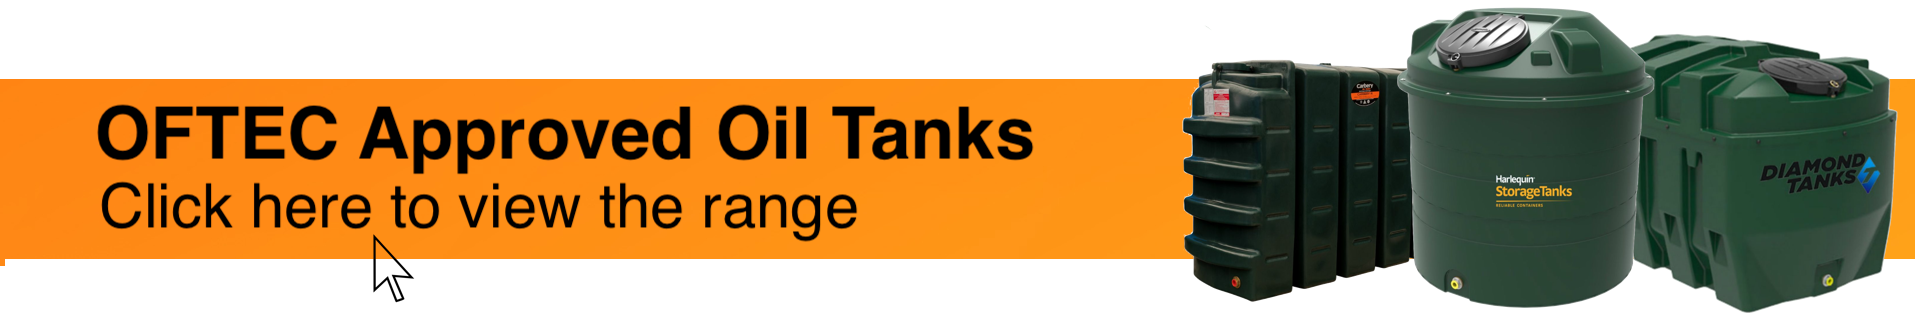 Photograph of Carbery 1100R Rectangular Slimline Single Skin Heating Oil Tank, Harlequin 1450HQi Vertical Bunded Oil Tank and Diamond 1650HZB Horizontal Bunded Oil Tank on an orange background. Accompanying text states 'Click here to view our range of OFTEC Approved Oil Tanks'.